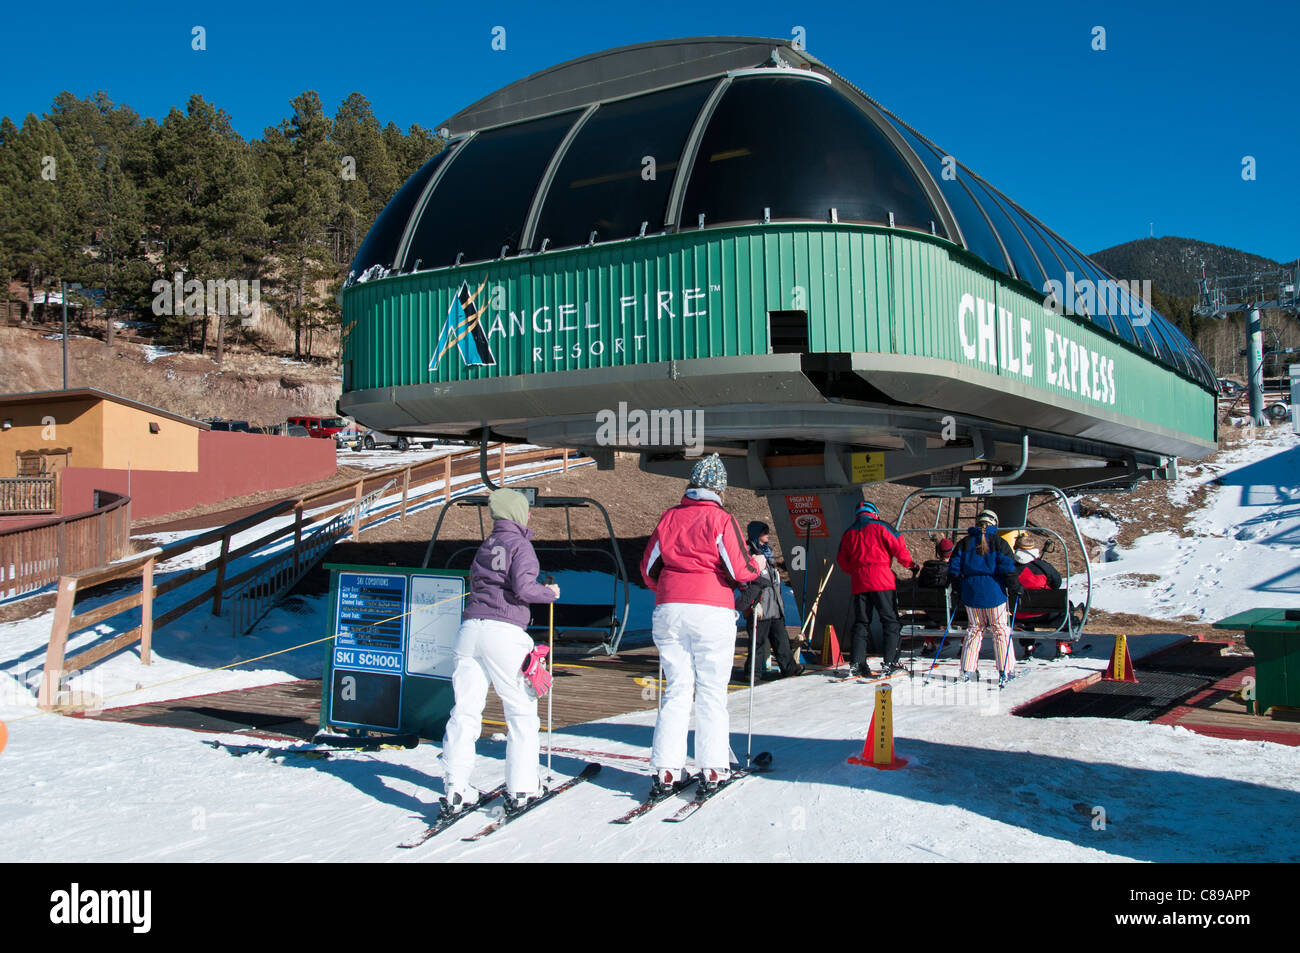 chile express chairlift, base area, angel fire resort, angel fire